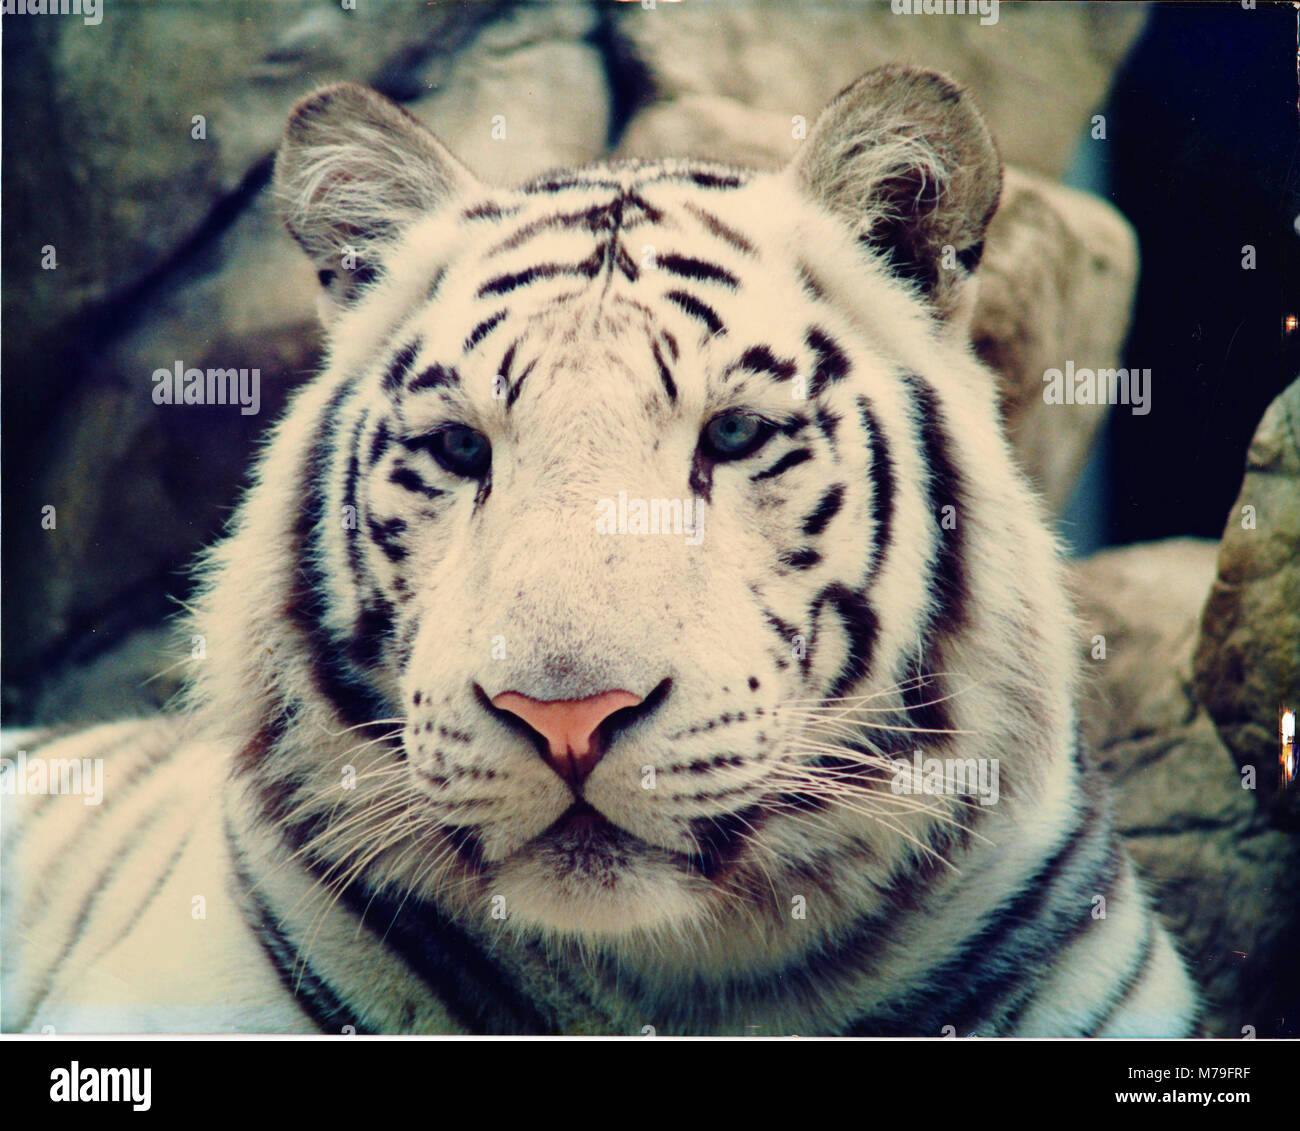 White tiger at the Omaha Zoo - Stock Image